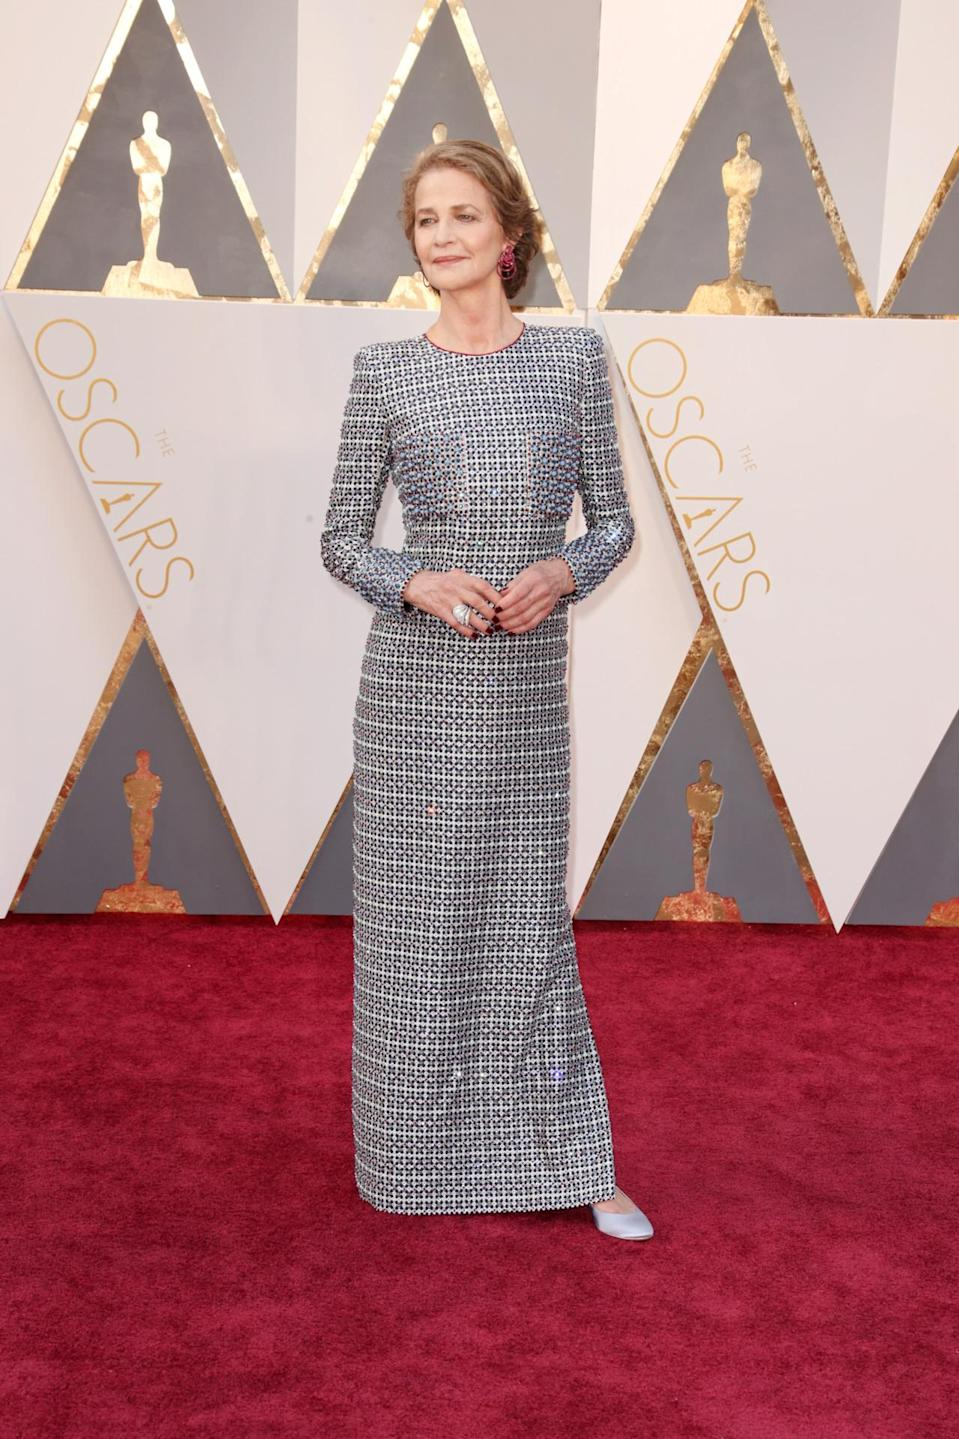 <p>Charlotte Rampling brought French coolness to the States' biggest show in a long-sleeved sequin dress and kitten heels. <i><i>(Photo: Getty Images)</i></i></p>